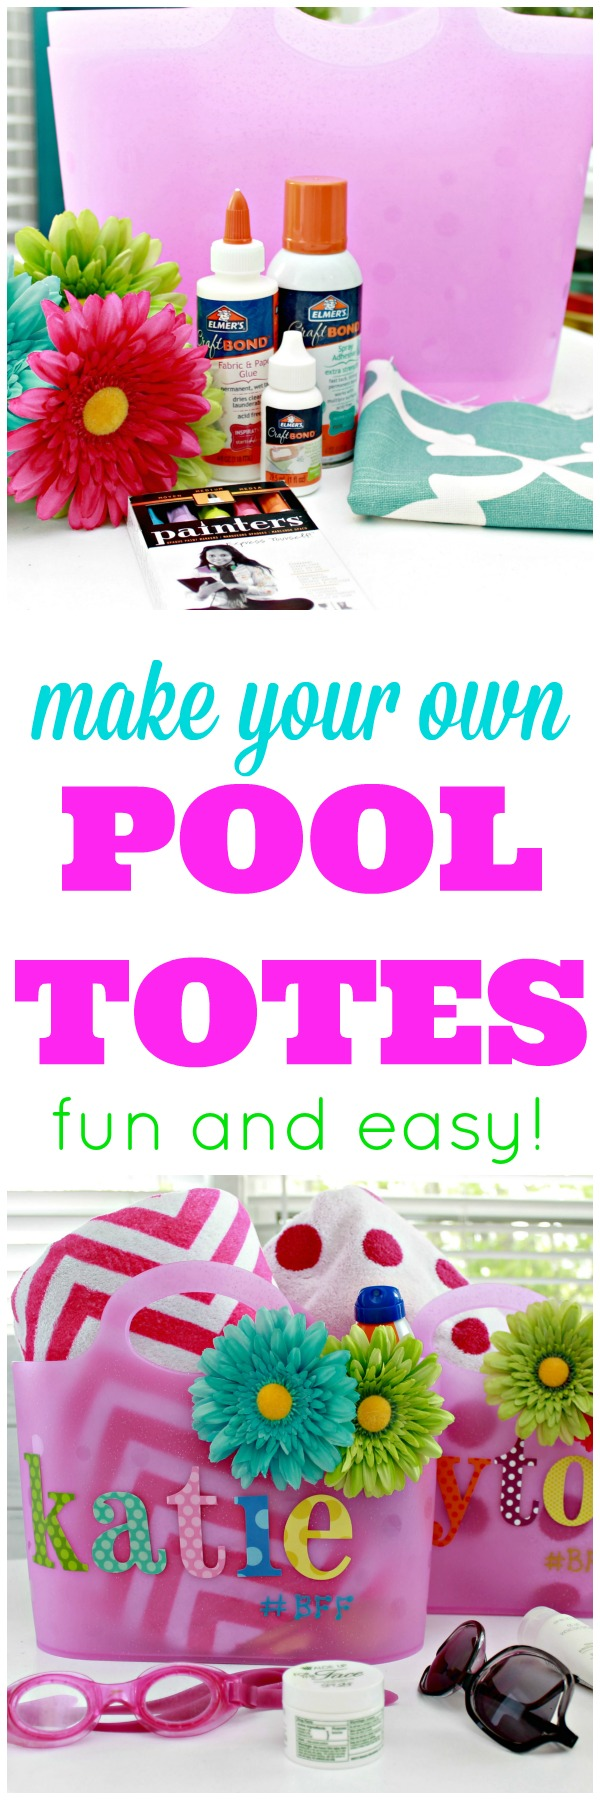 Diy pool tote skip to my lou bloglovin for Create your own pool